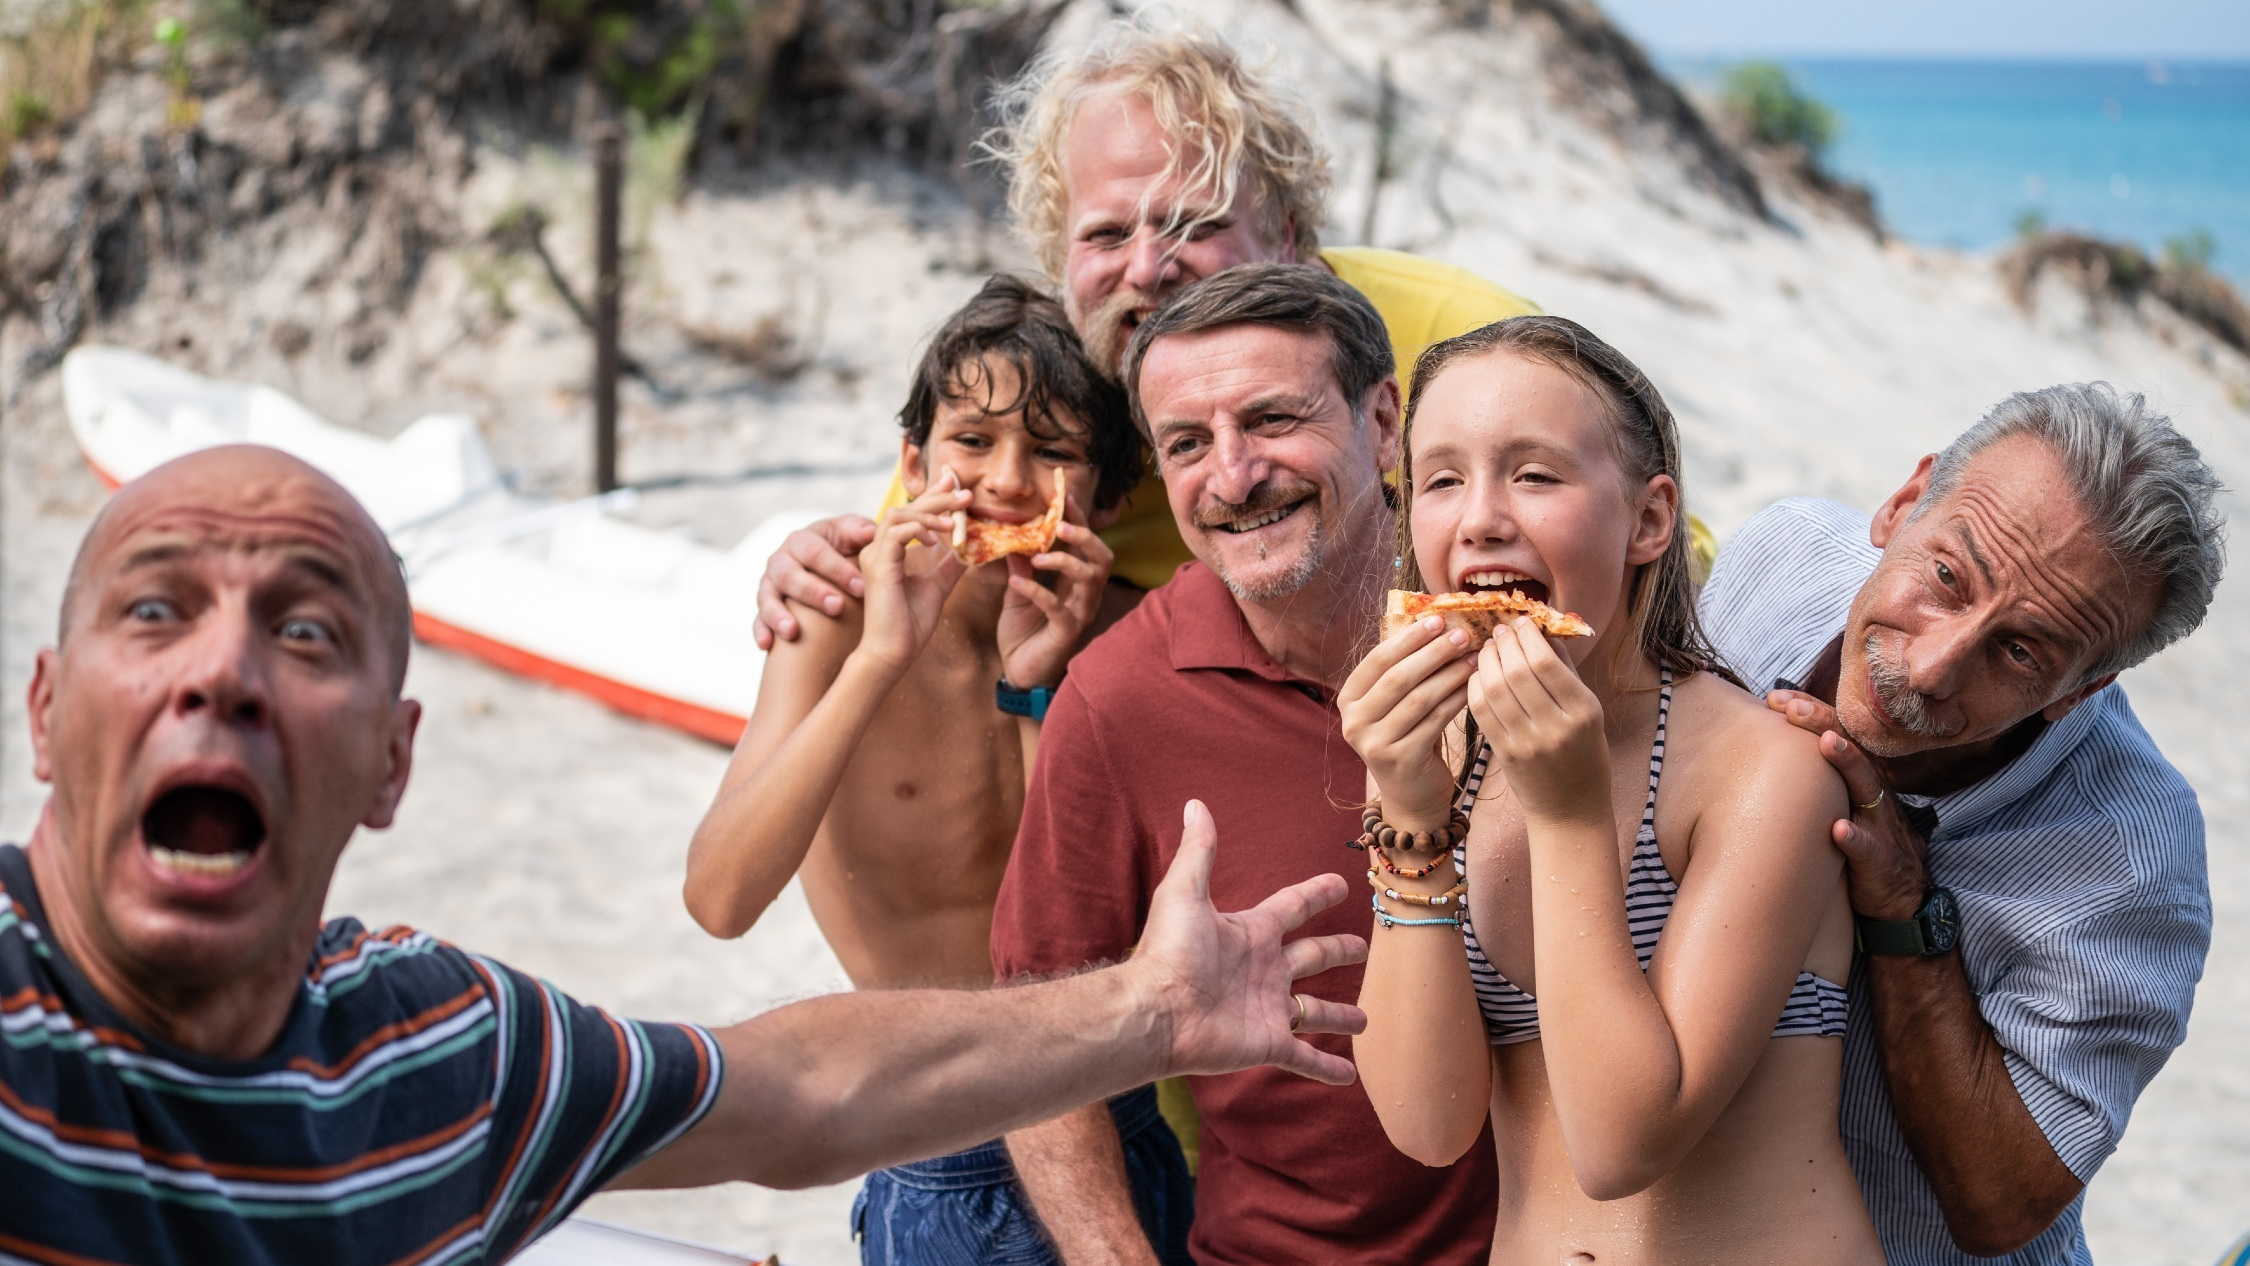 A family eating pizza on a beach while a man in the foreground gestures a them wildly